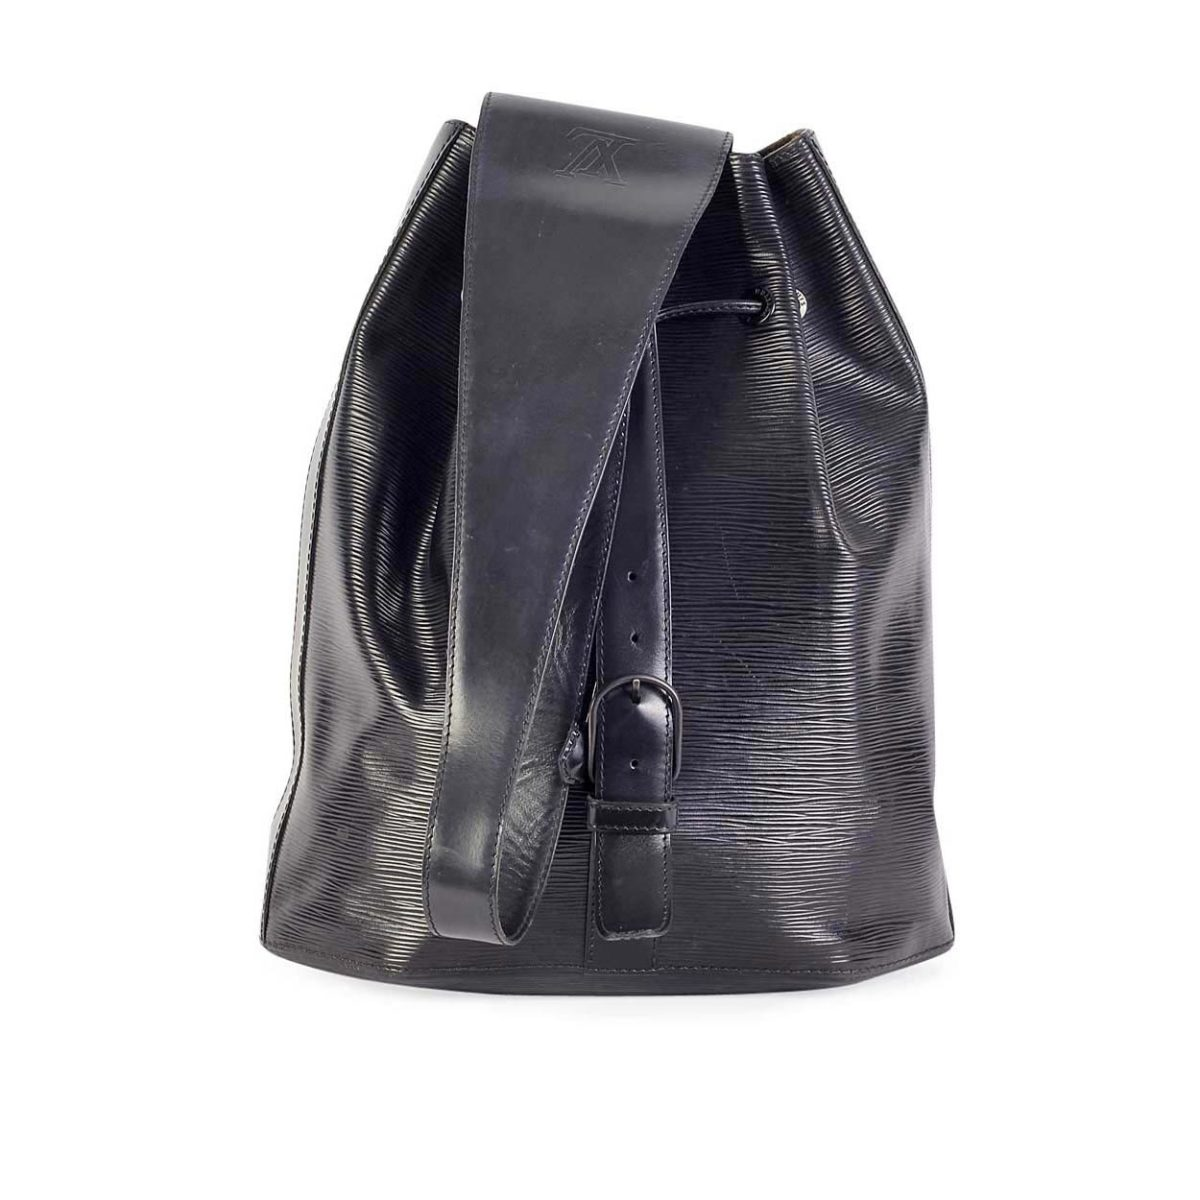 decaa361b4 LOUIS VUITTON Vintage Epi Sac à Dos Drawstring Black/Noir | Luxity